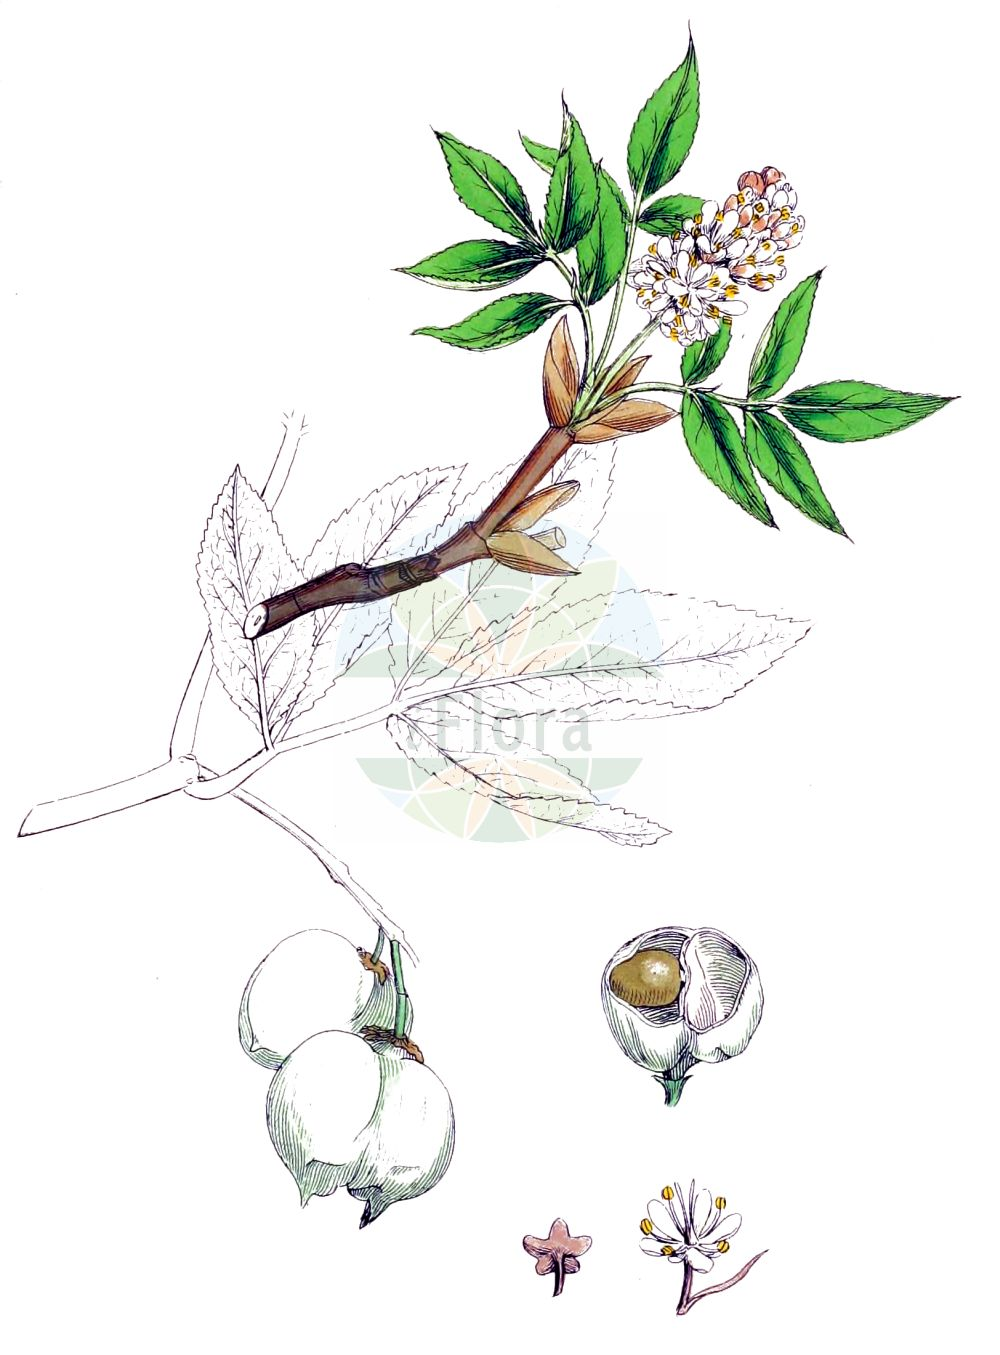 Historische Abbildung von Staphylea pinnata (Gewoehnliche Pimpernuss - Bladdernut). Das Bild zeigt Blatt, Bluete, Frucht und Same. ---- Historical Drawing of Staphylea pinnata (Gewoehnliche Pimpernuss - Bladdernut).The image is showing leaf, flower, fruit and seed.(Staphylea pinnata,Gewoehnliche Pimpernuss,Bladdernut,Staphylea pinnata,Gewoehnliche Pimpernuss,Paternosterbaum,Pimpernuss,Bladdernut,European Bladdernut,Staphylea,Pimpernuss,Bladdernut,Staphyleaceae,Pimpernussgewaechse,Bladdernut family,Blatt,Bluete,Frucht,Same,leaf,flower,fruit,seed,Sowerby (1790-1813))